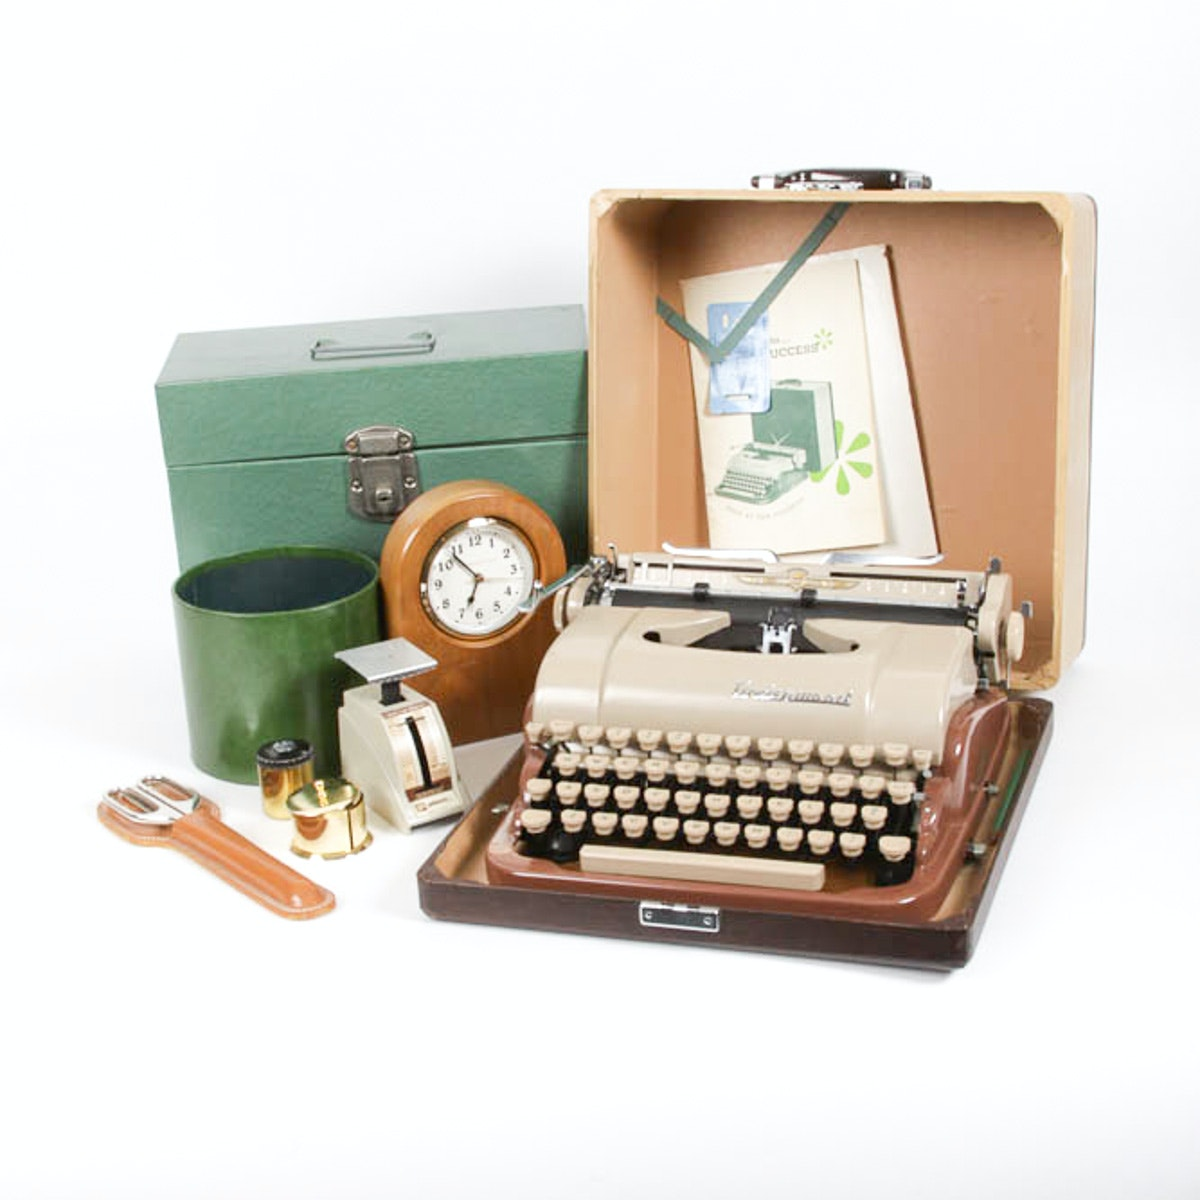 Merveilleux Variety Of Vintage Office Accessories And Equipment ...